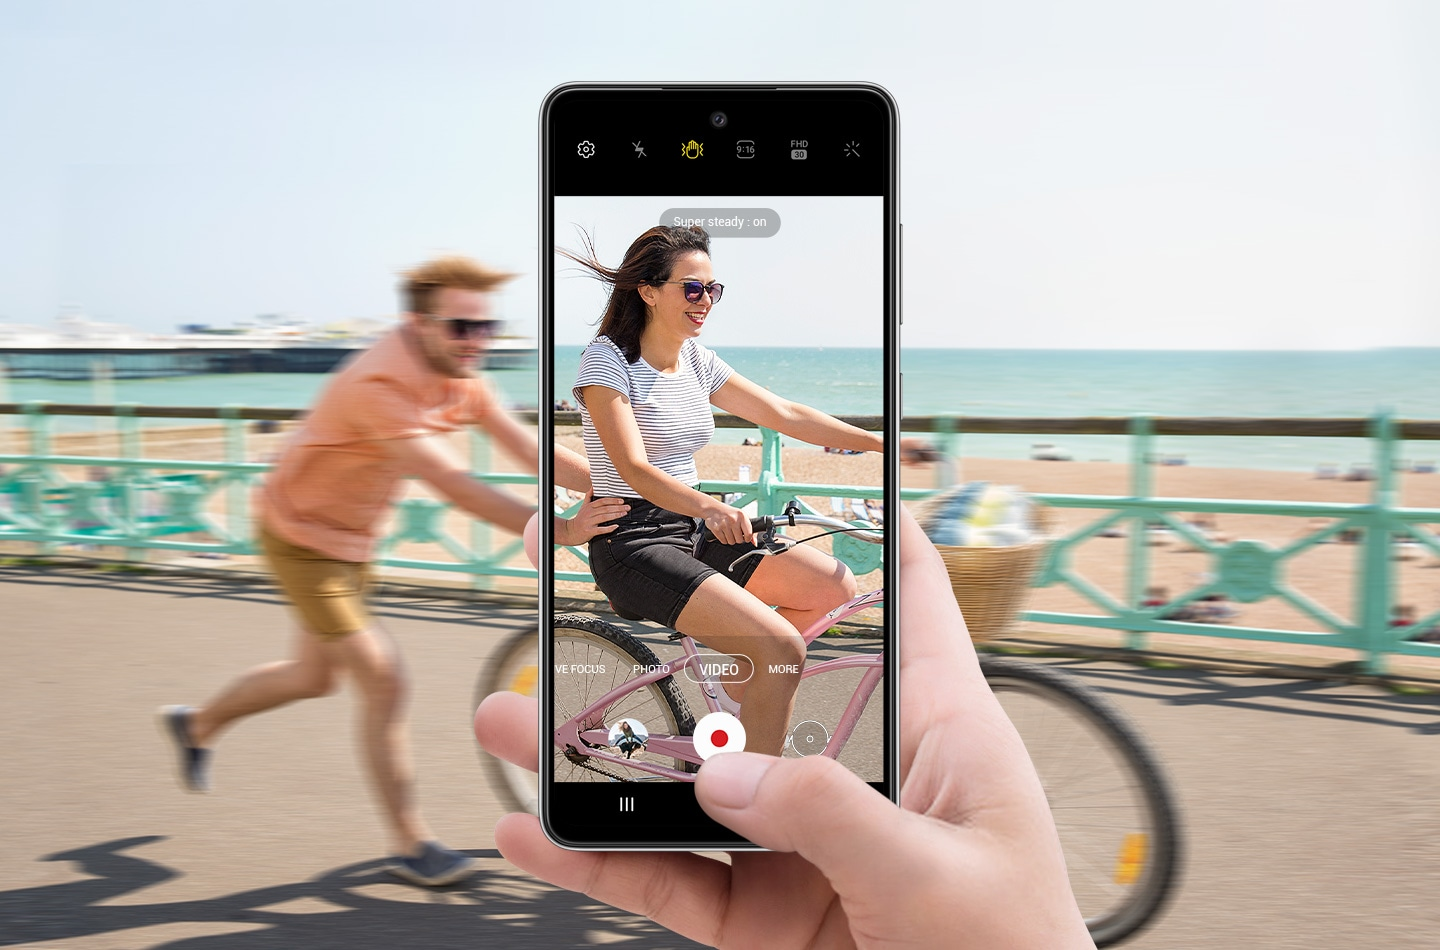 A person on a bike with another person running behind them and pushing. In front of this is a hand holding Galaxy A52s 5G with the camera interface onscreen. The scene in the display is clearer than the scene outside of the display, depicting how Super Steady allows video to be captured smoothly even if the subject is in motion.